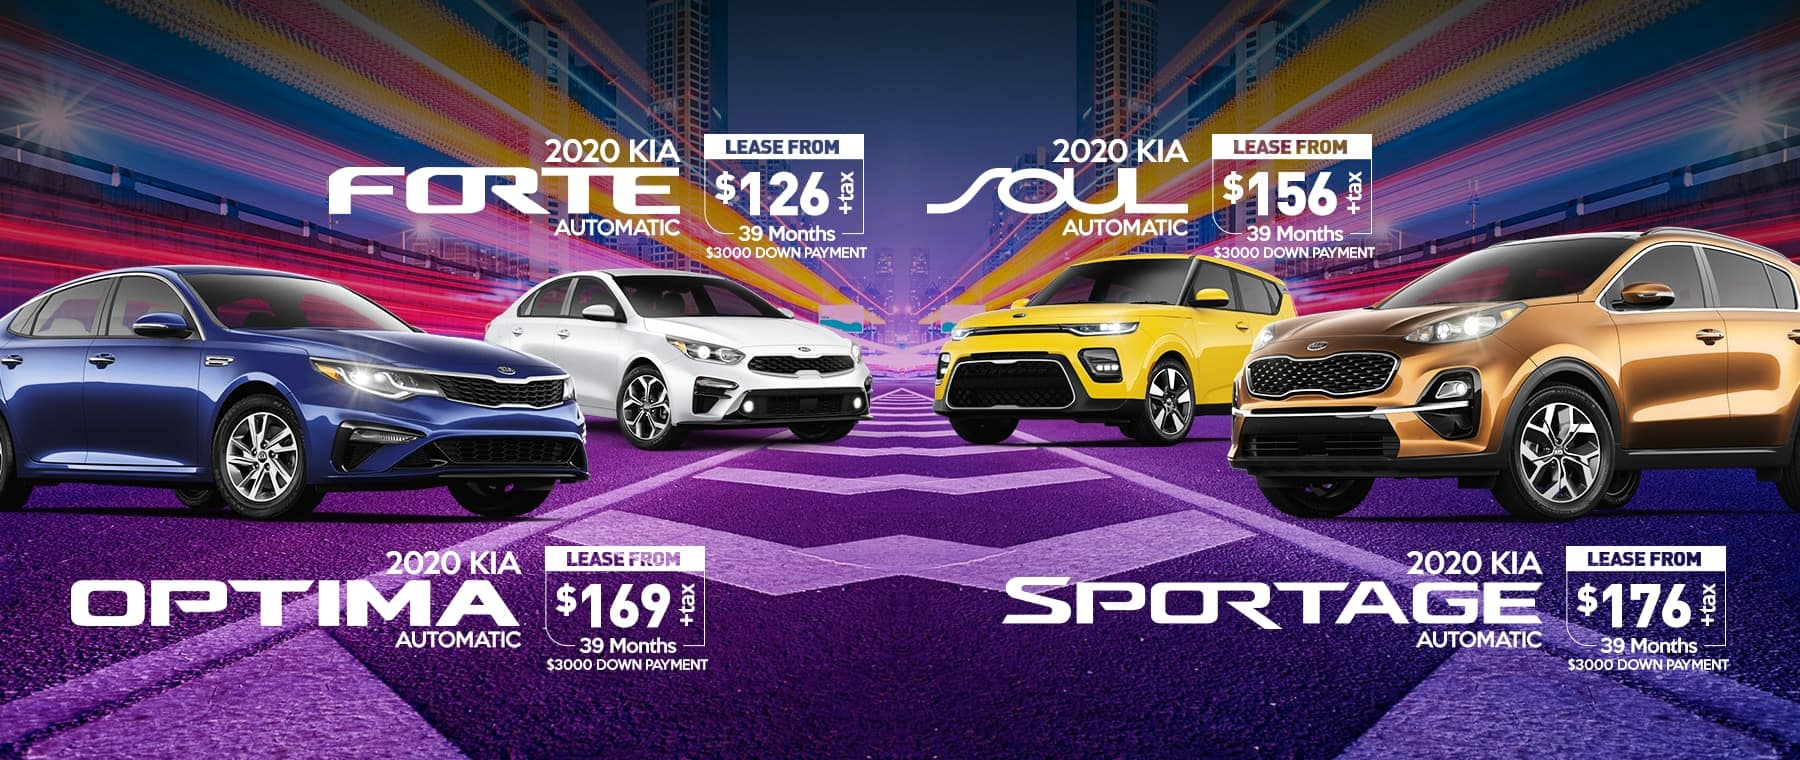 New Kia Offers for February 2020